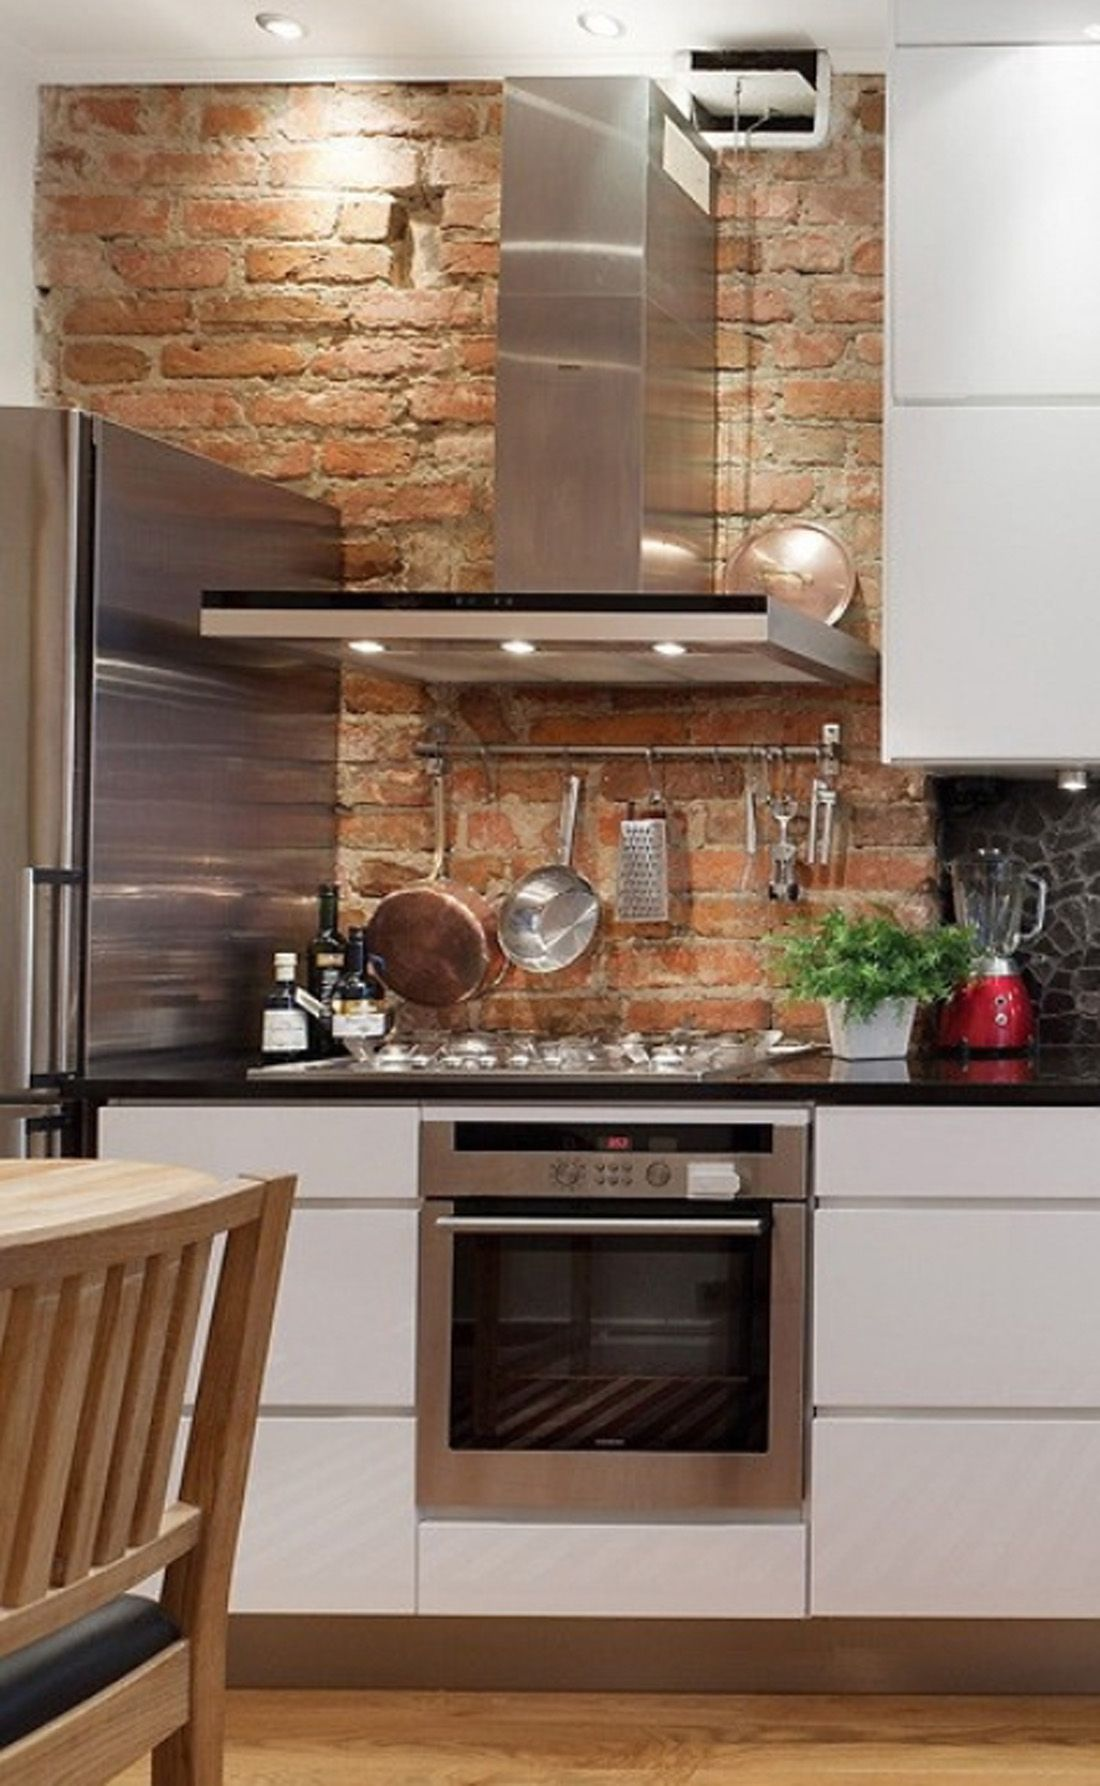 Brick backsplash for kitchens interior brick wall design Industrial design kitchen ideas